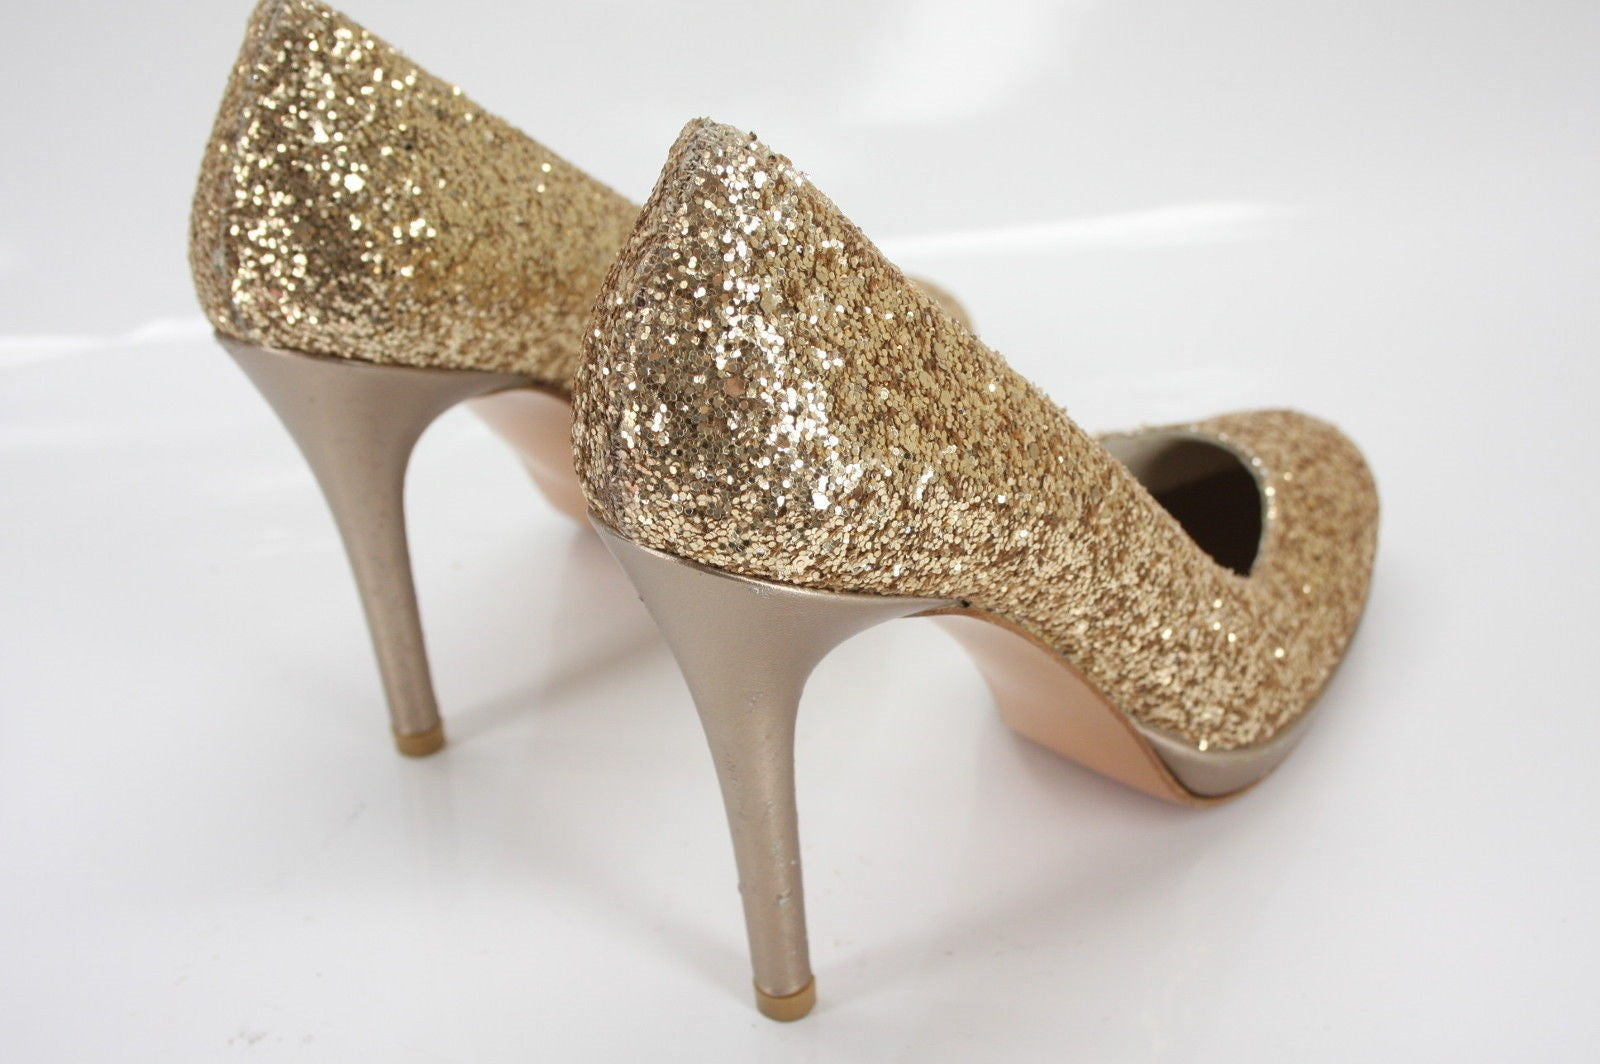 Stuart Weitzman Gold Glitter Glitswoon Platform Pumps SZ 8N Narrow New $375